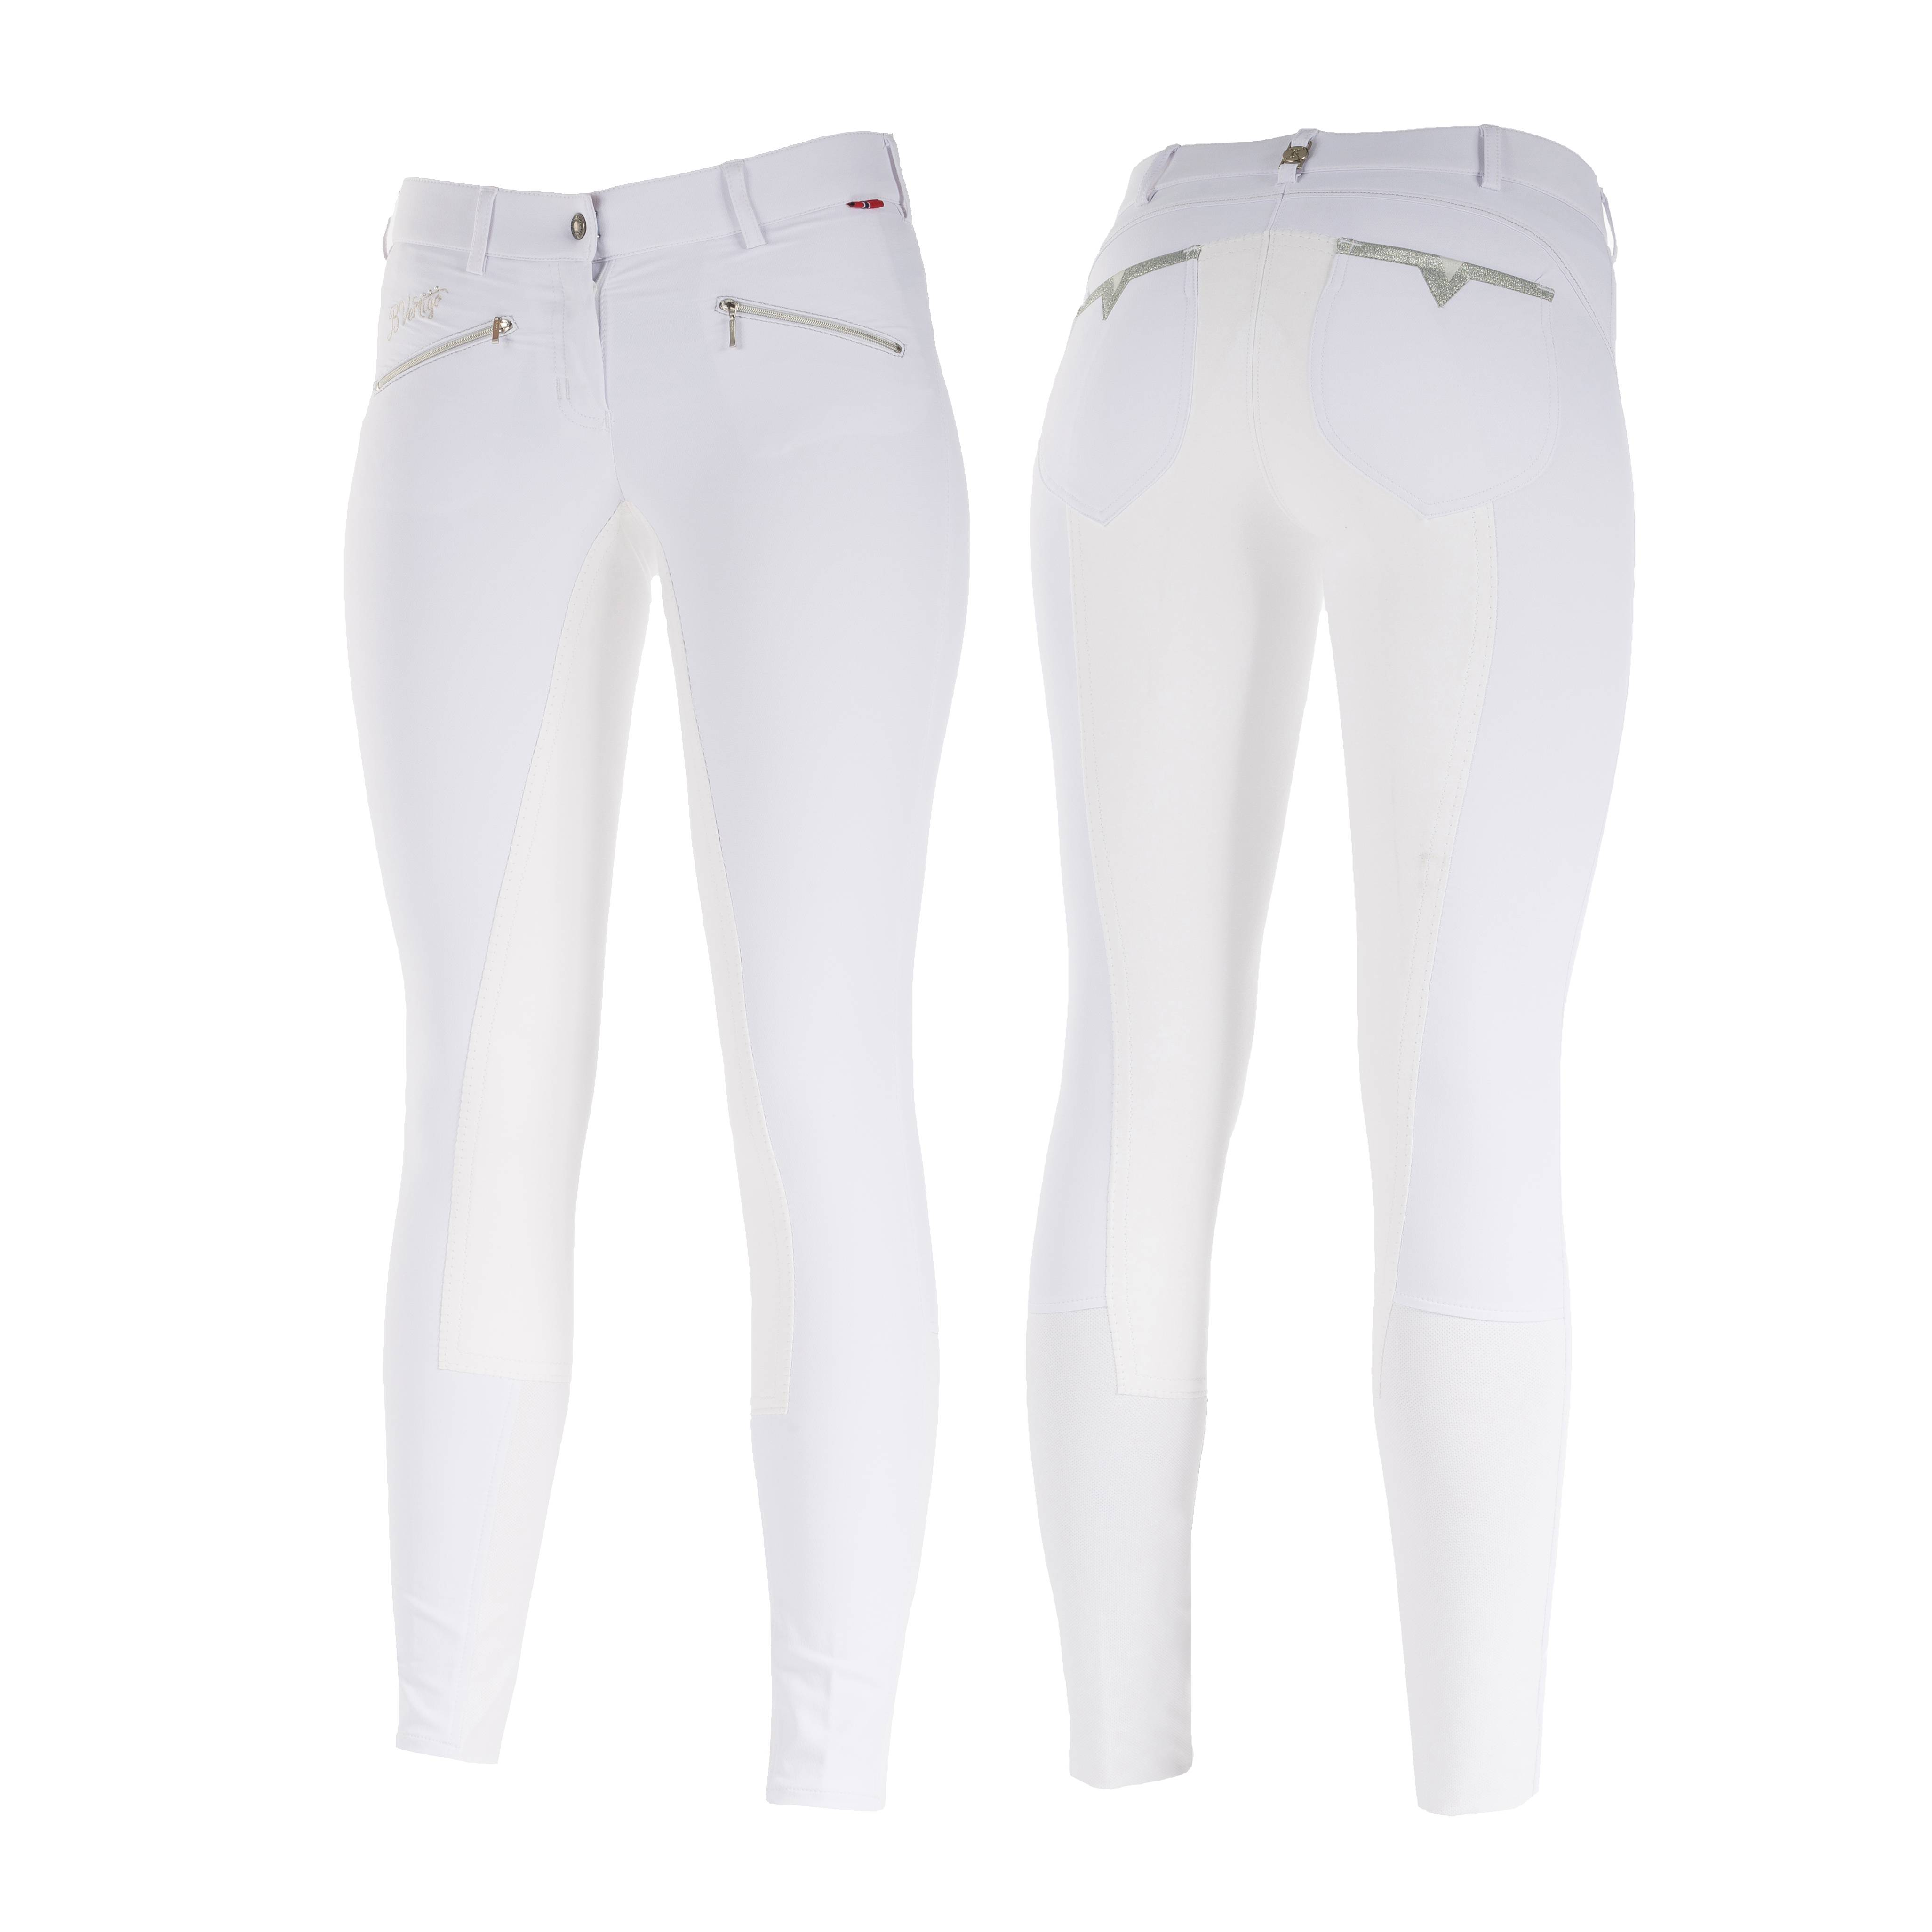 B Vertigo Claire Medium Waist Full Seat Breeches-Ladies